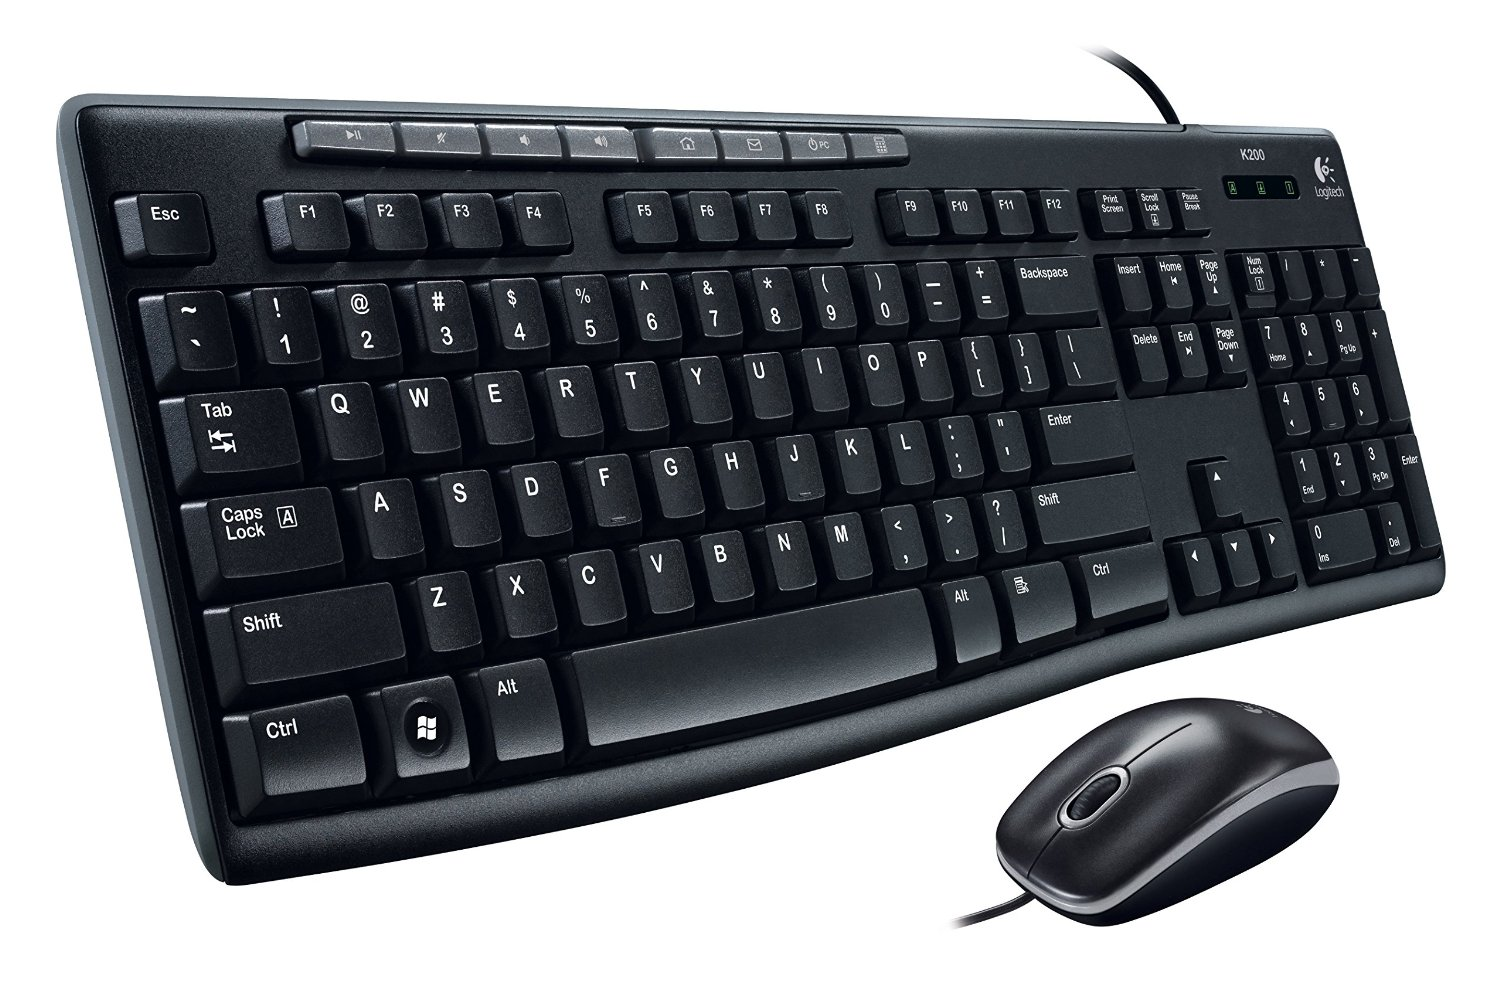 Logitech Media Combo MK200 Full-Size Keyboard and High-Definition Optical Mouse(China (Mainland))